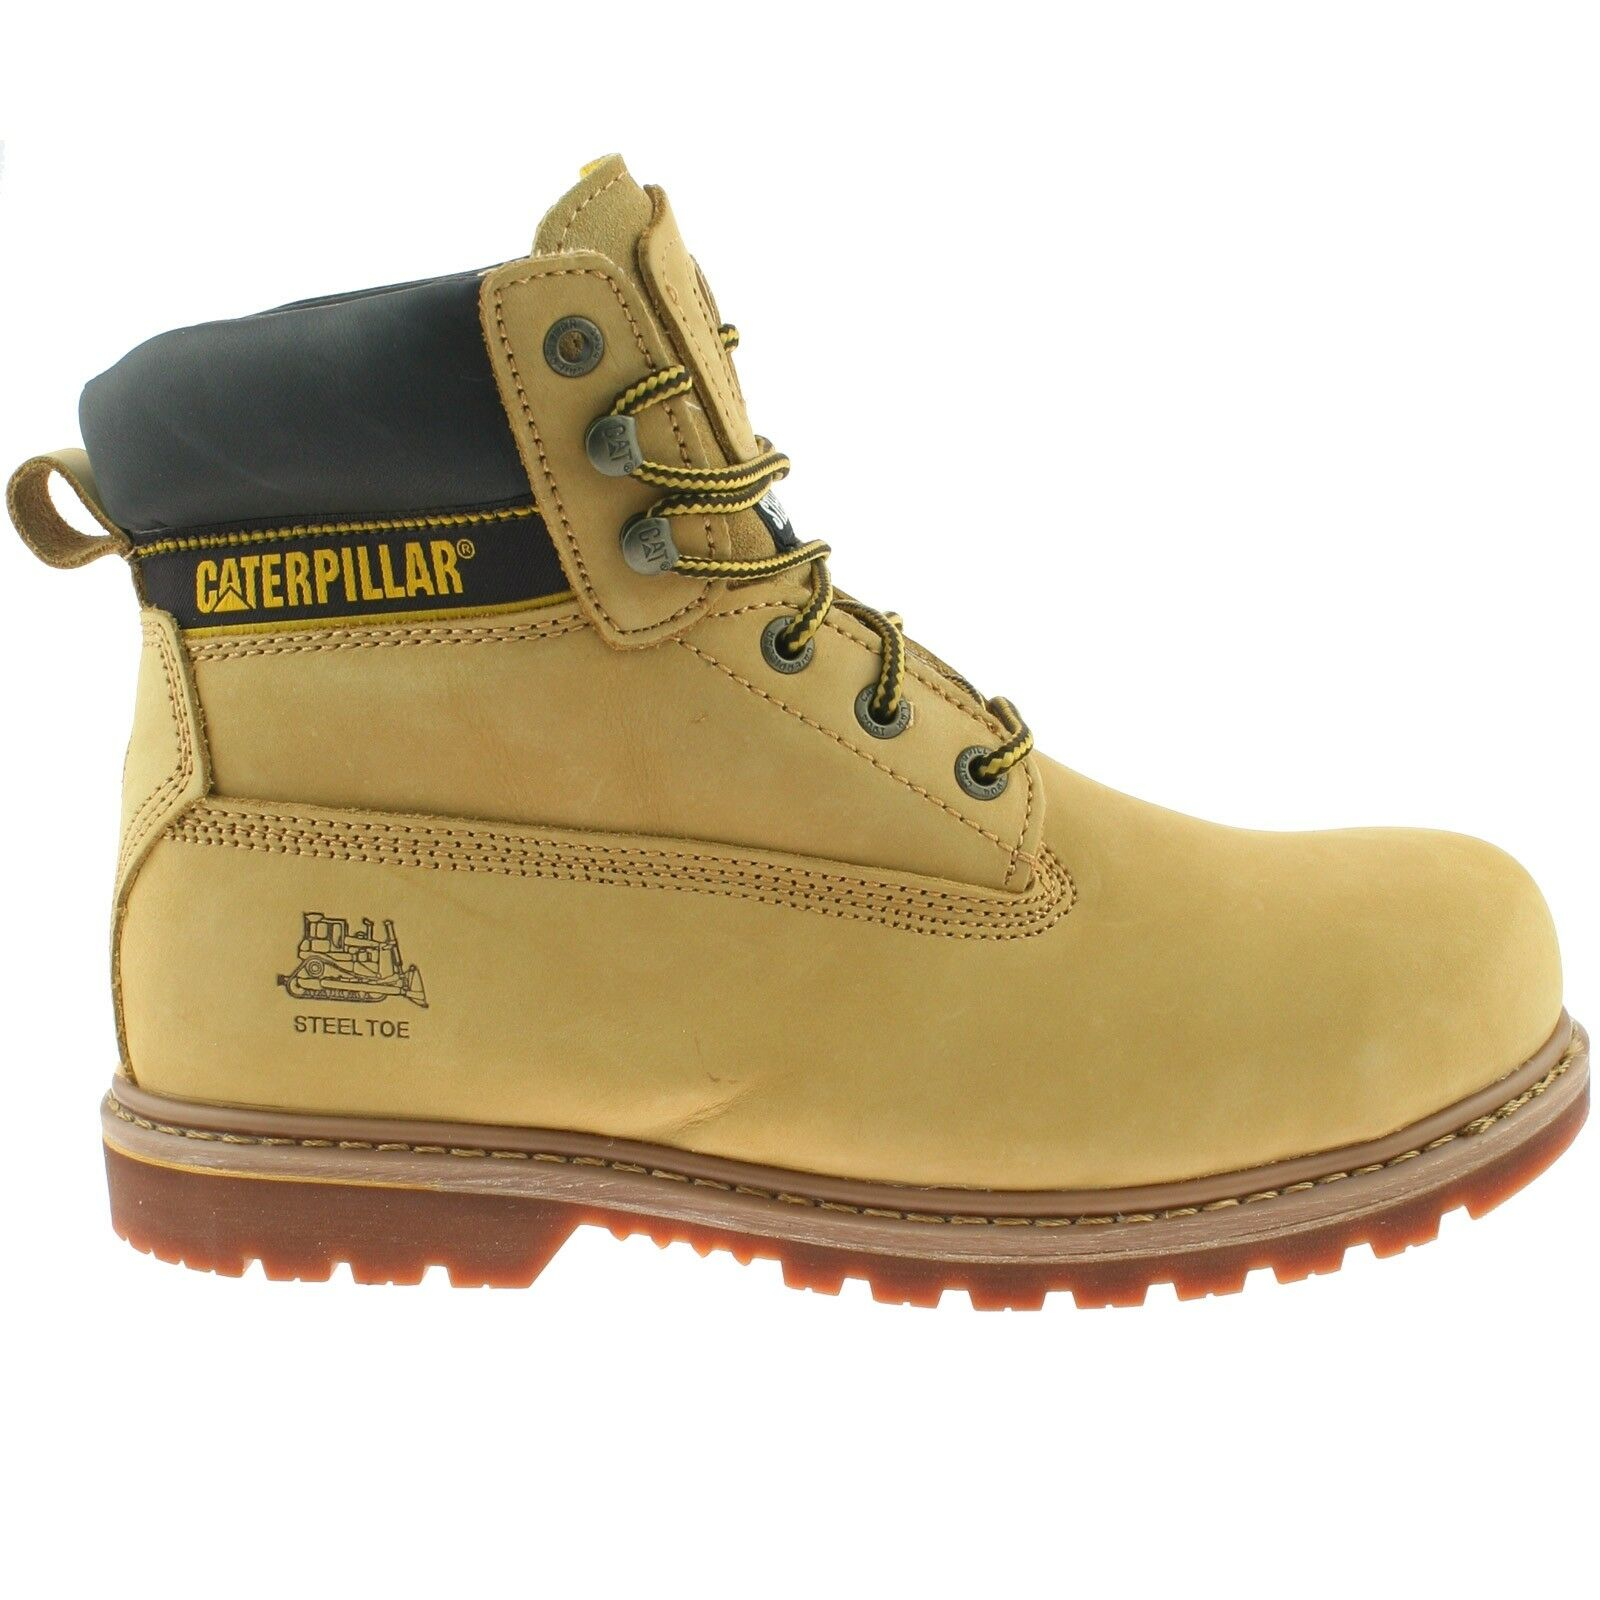 Dedicated Leather Safety Work Boots Lightweight Comfort Steel Toe Womens Caterpillar Tan Work Boots & Shoes Facility Maintenance & Safety